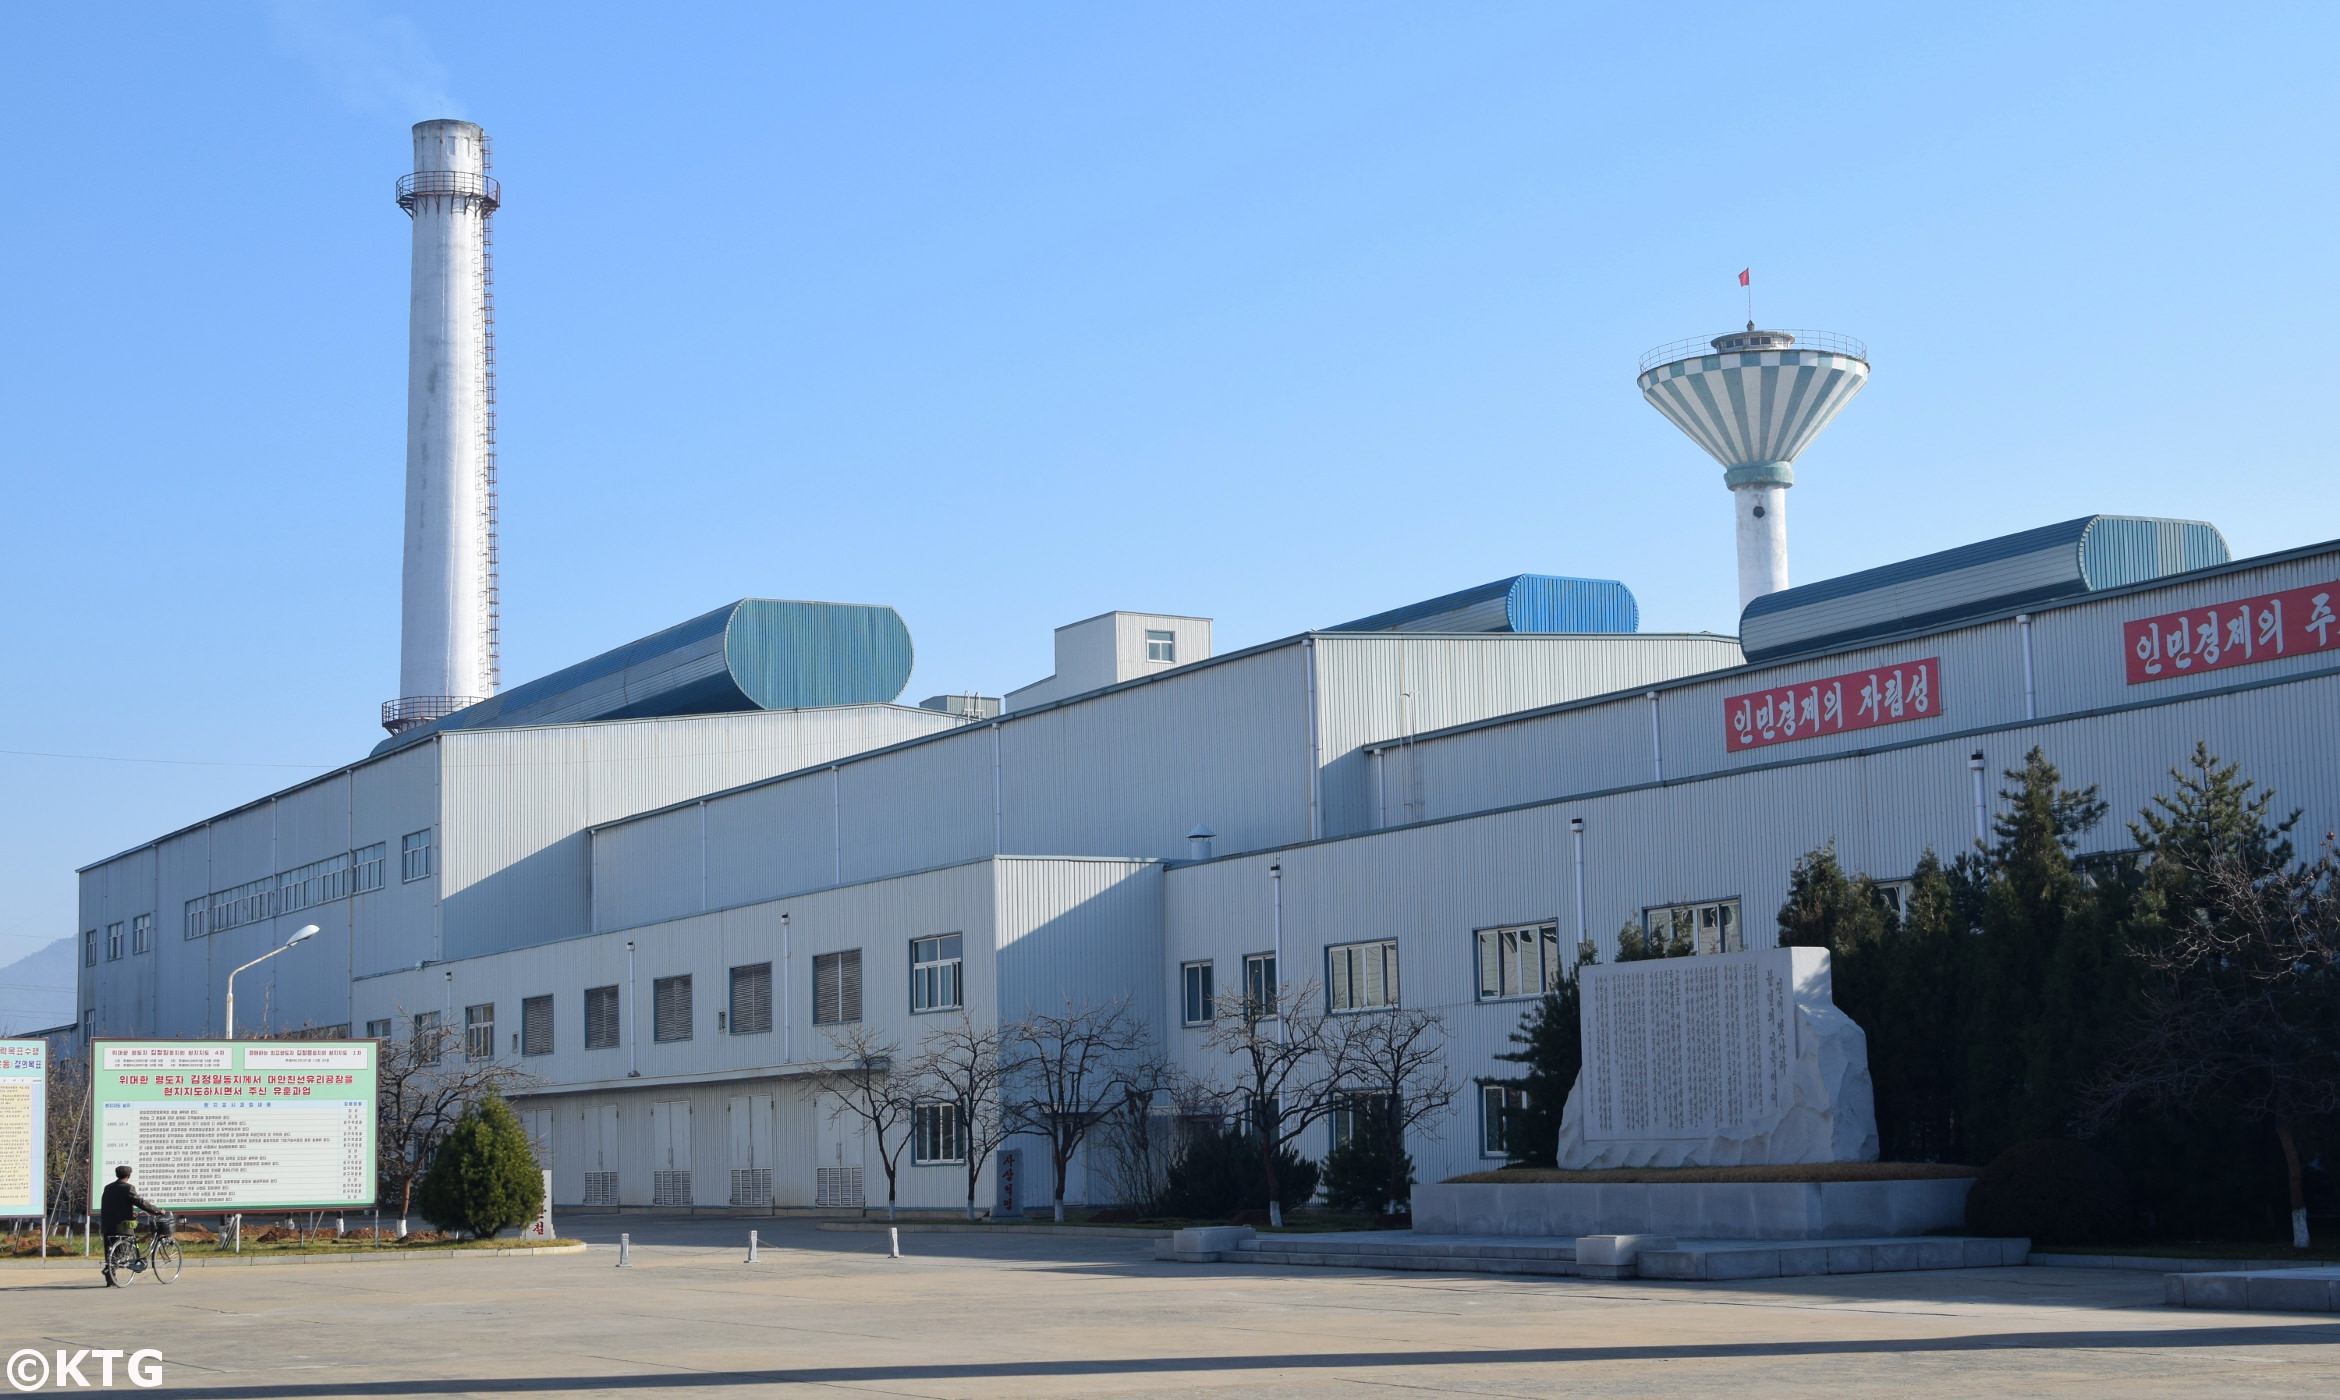 Entrance to the Taen Glass Manufacturing factory near Nampo in North Korea. Picture taken by KTG tours